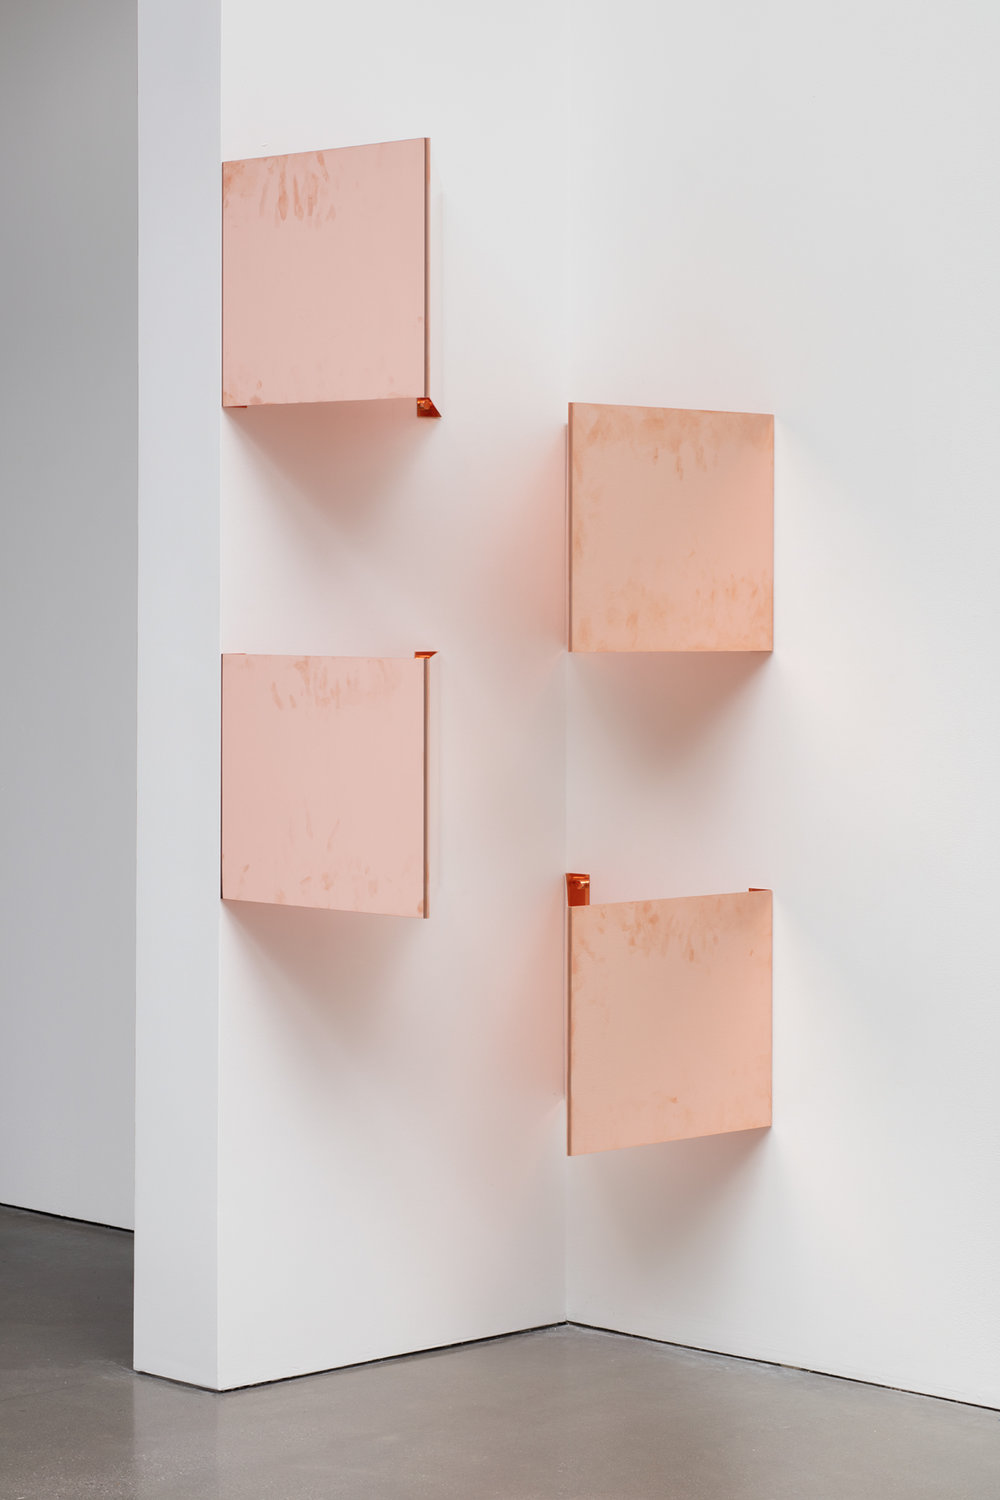 "Copper Surrogates (48"" x 120"" 48 ounce C11000 Copper Alloy, 45º/45º/90º, February 23–27/April 9, 2018, Los Angeles, California)    2018–   Polished copper  18 1/2 x 14 1/16 x 18 1/2 inches each, 4 parts   Surrogates (Modular, Art Handling), 2014–    Equivalents, 2018"